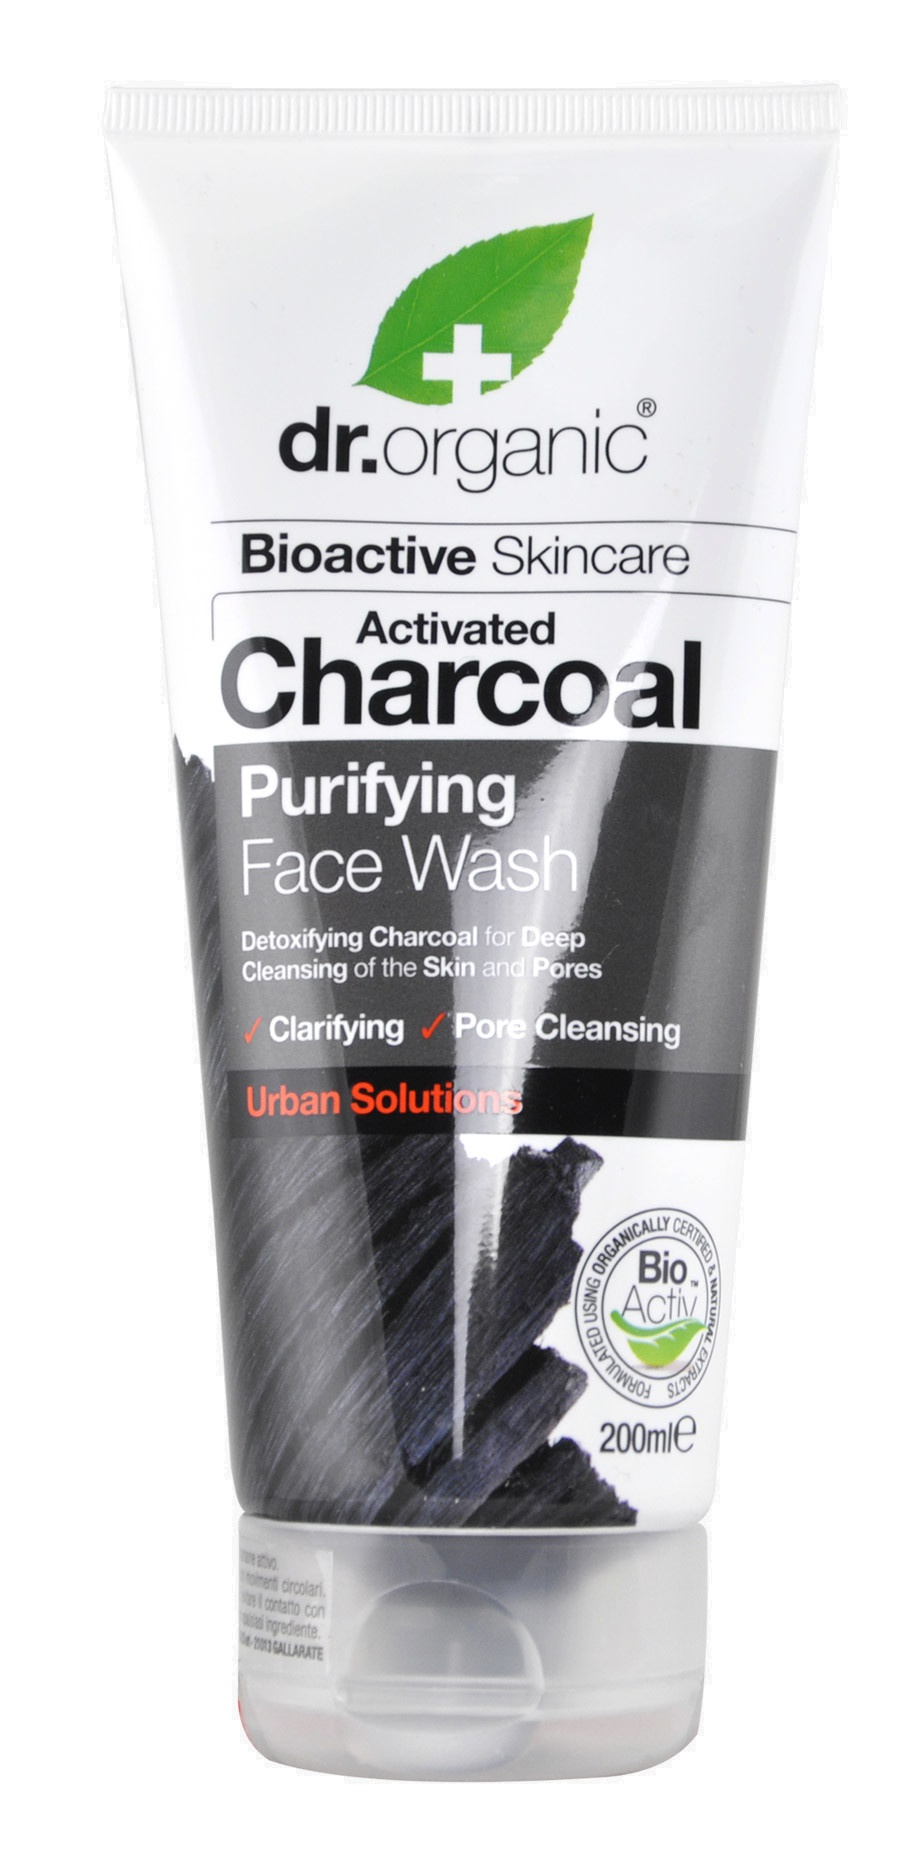 Dr Organic Activated Charcoal Purifying Face Wash